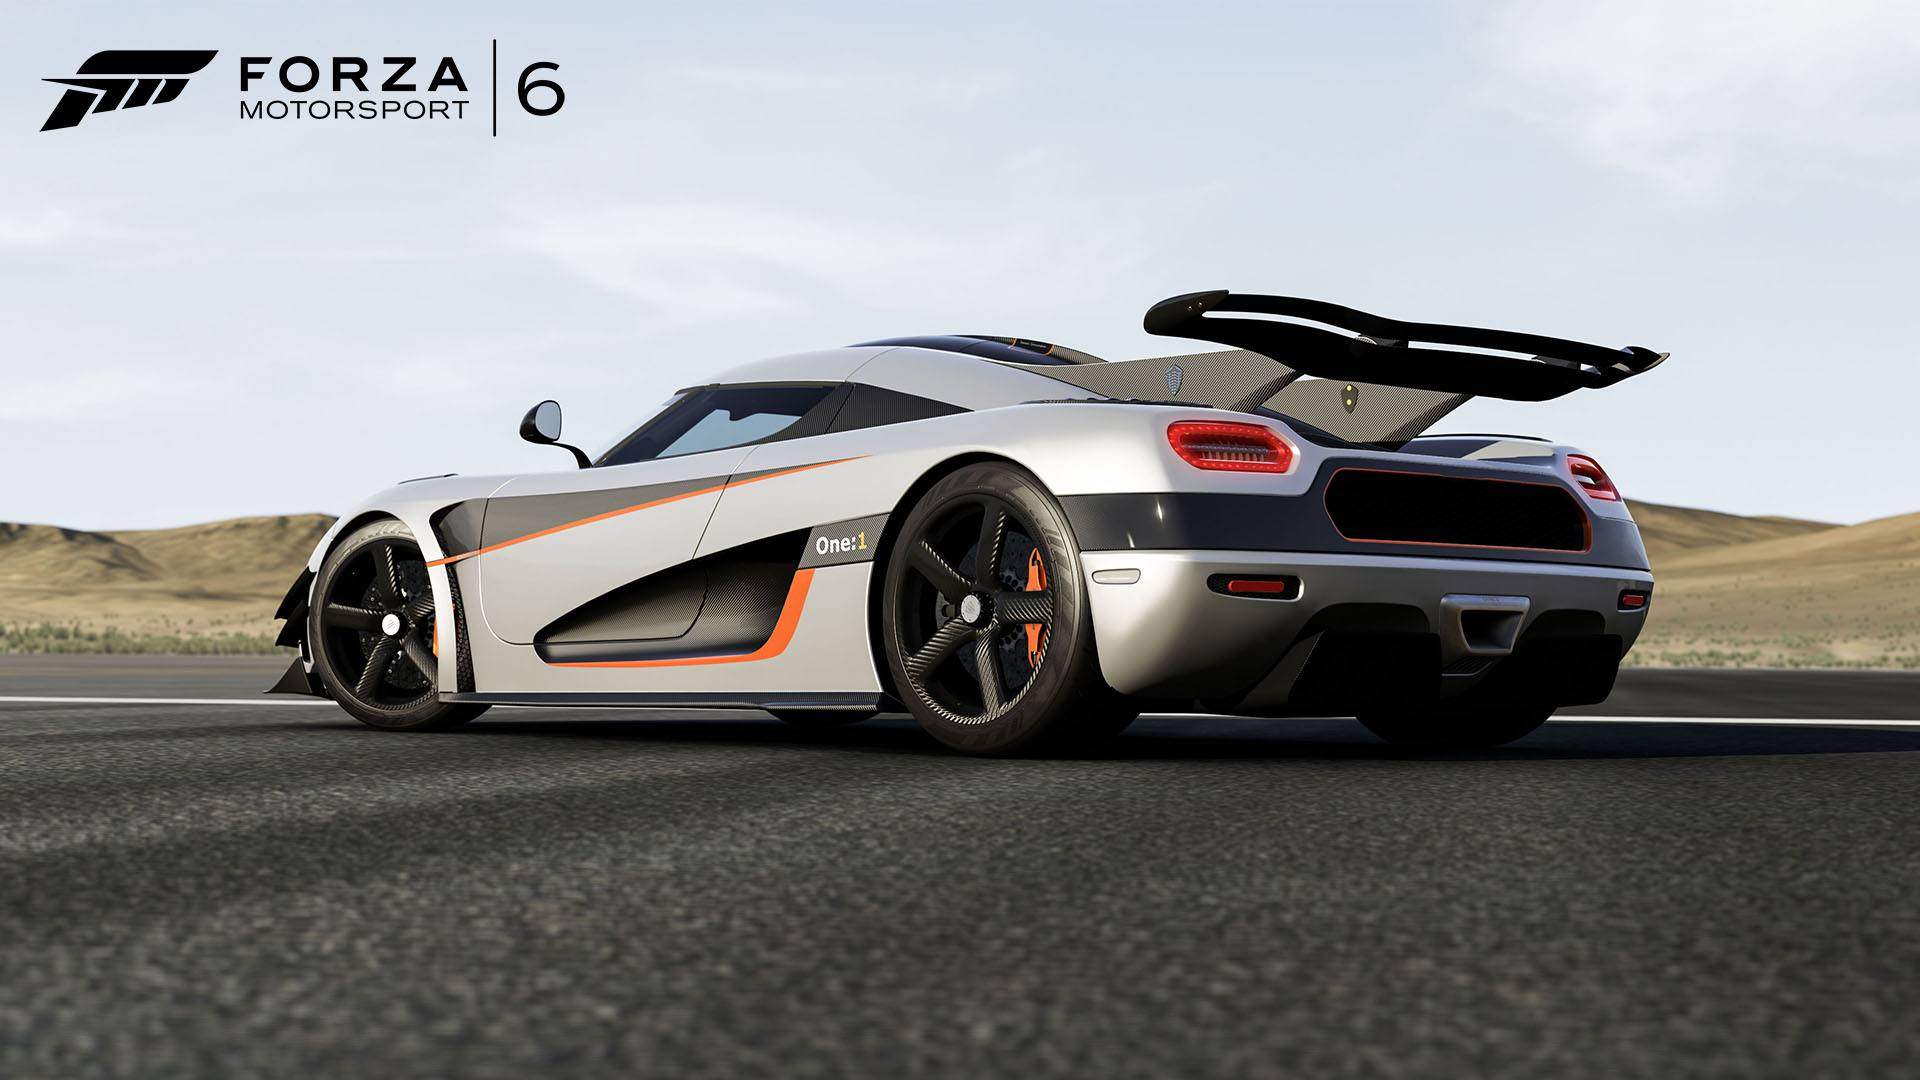 DecDLC_KOE_One_15_Forza6_WM1